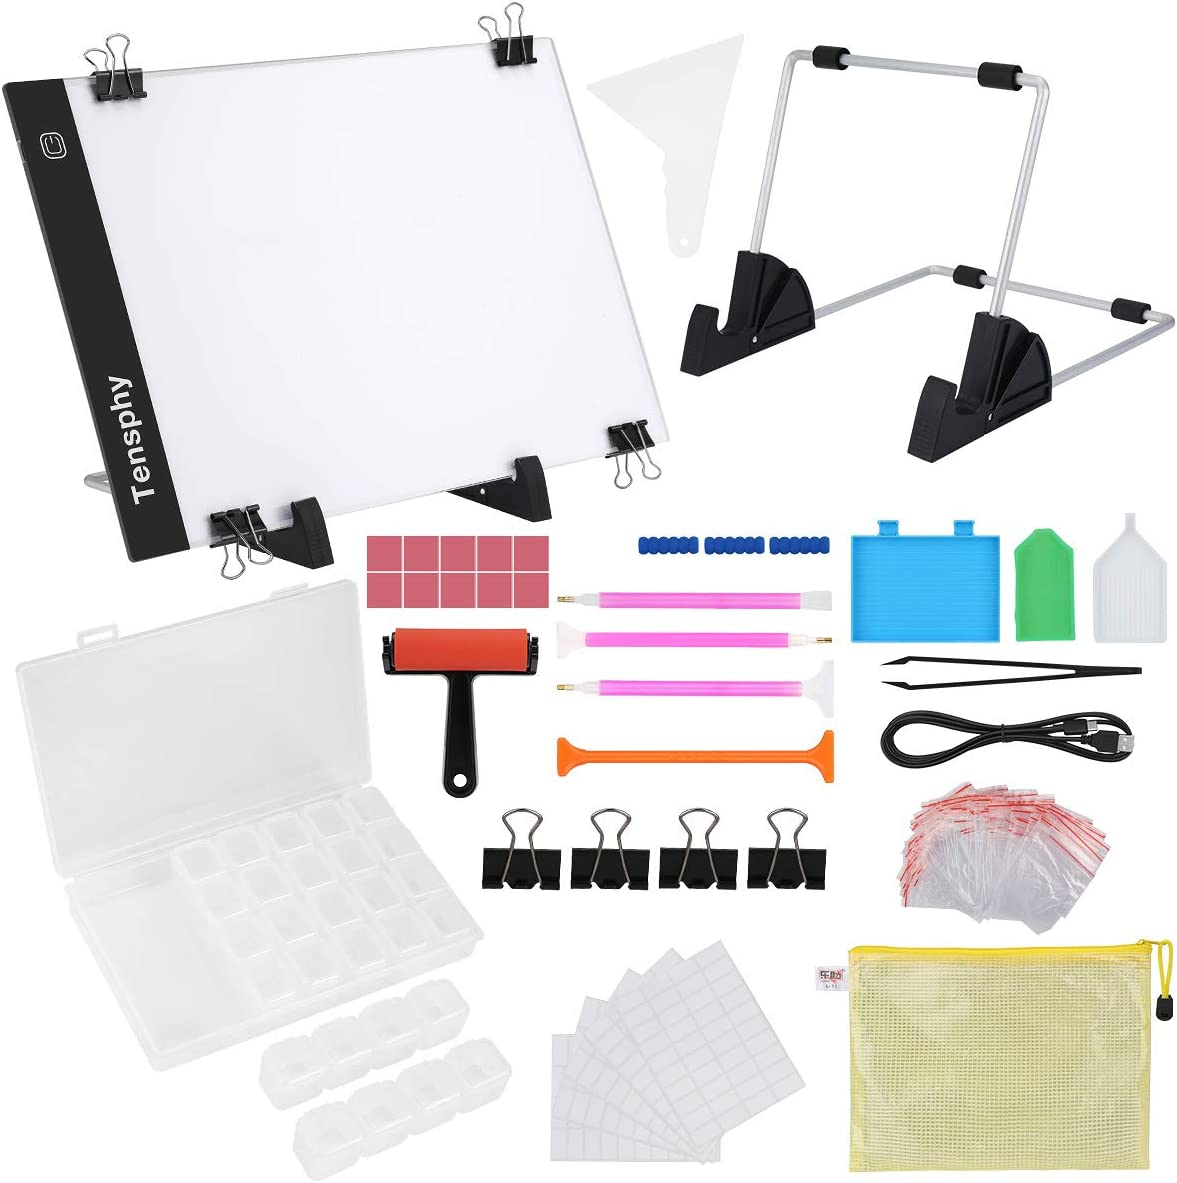 (137PCS) Diamond Painting A4 LED Light Pad Kit, Tensphy DIY Dimmable Light Brightness Board, Artcraft Tracing Light Table, Reusable Painting Pads for Full Drill & Partial Drill 5D Diamond Painting